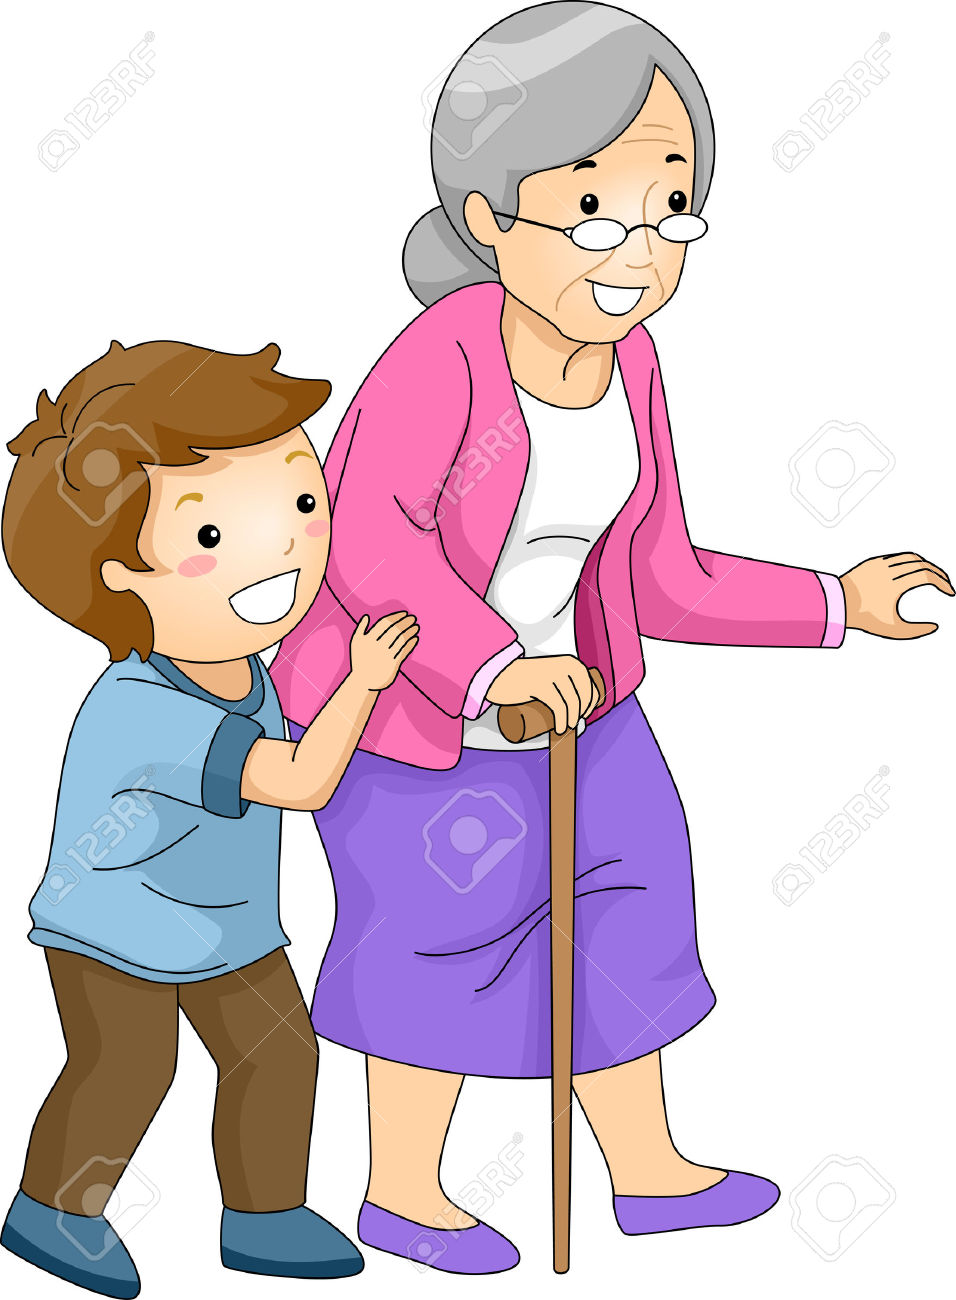 956x1300 Children Helping Others Clipart F5497081d48d27ac873712716763f91c